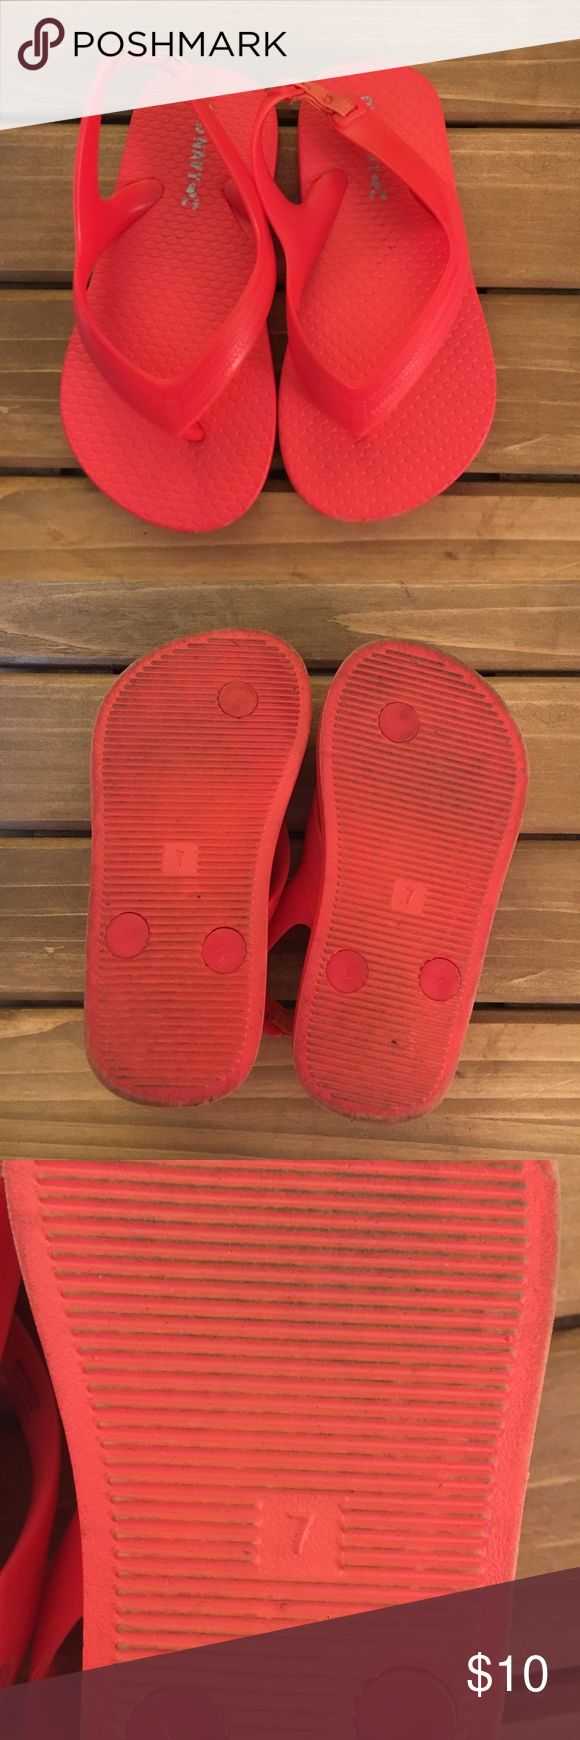 Old Navy Toddler Red Flip Flops size 7 These flips flops are in excellent condition! Minor wear on bottom. Thanks so much for checking out this item today! We know that the shipping price is kinda ridiculous, so we suggest you bundle to get more for your money! You will also be saving money as well! Check out our bundle discount below! 💰reasonable offers accepted! Old Navy Shoes Sandals & Flip Flops